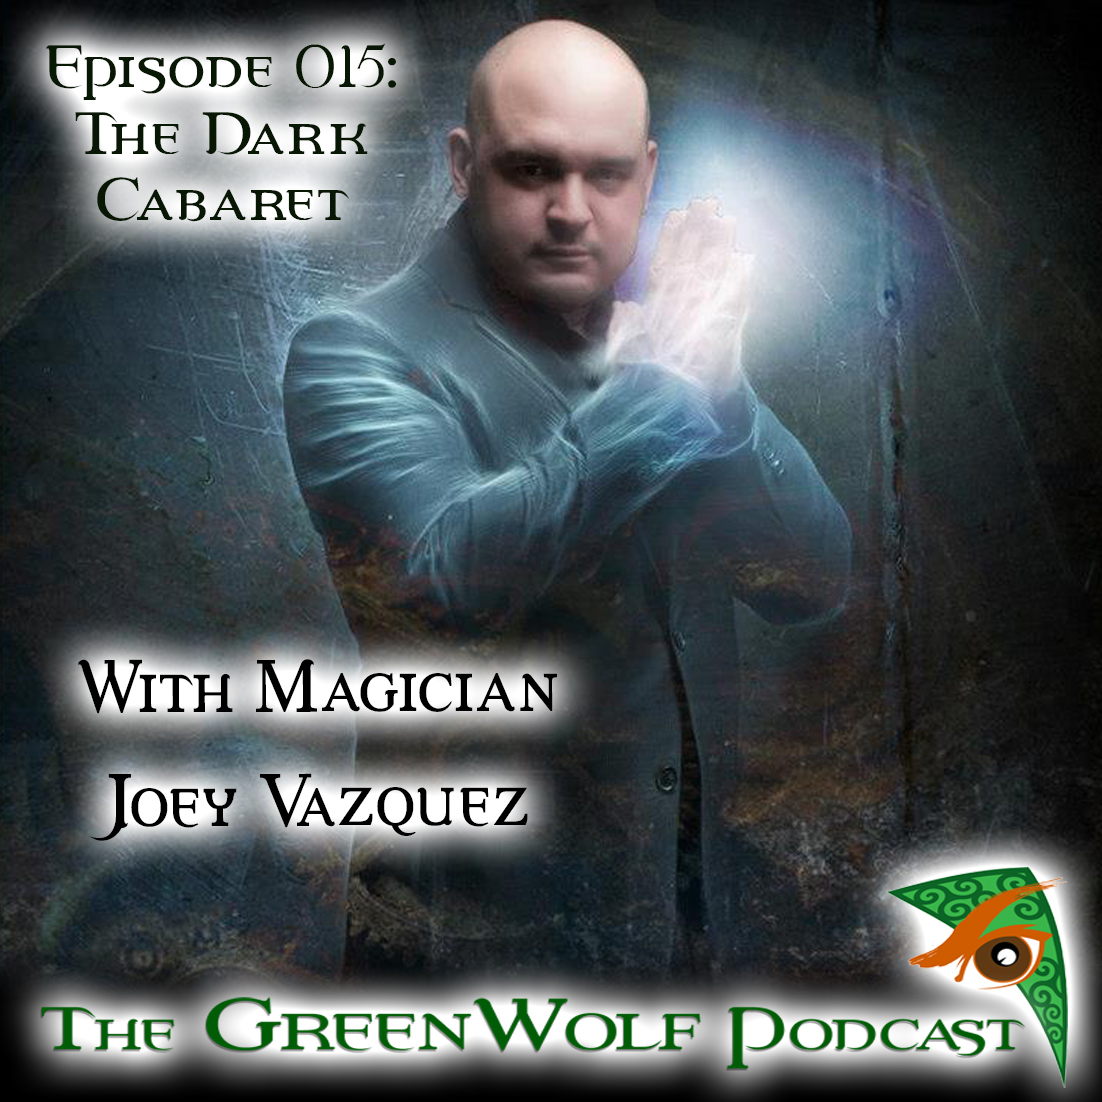 The GreenWolf Podcast - Ep 015- The Dark Cabaret with Magician Joey Vazquez